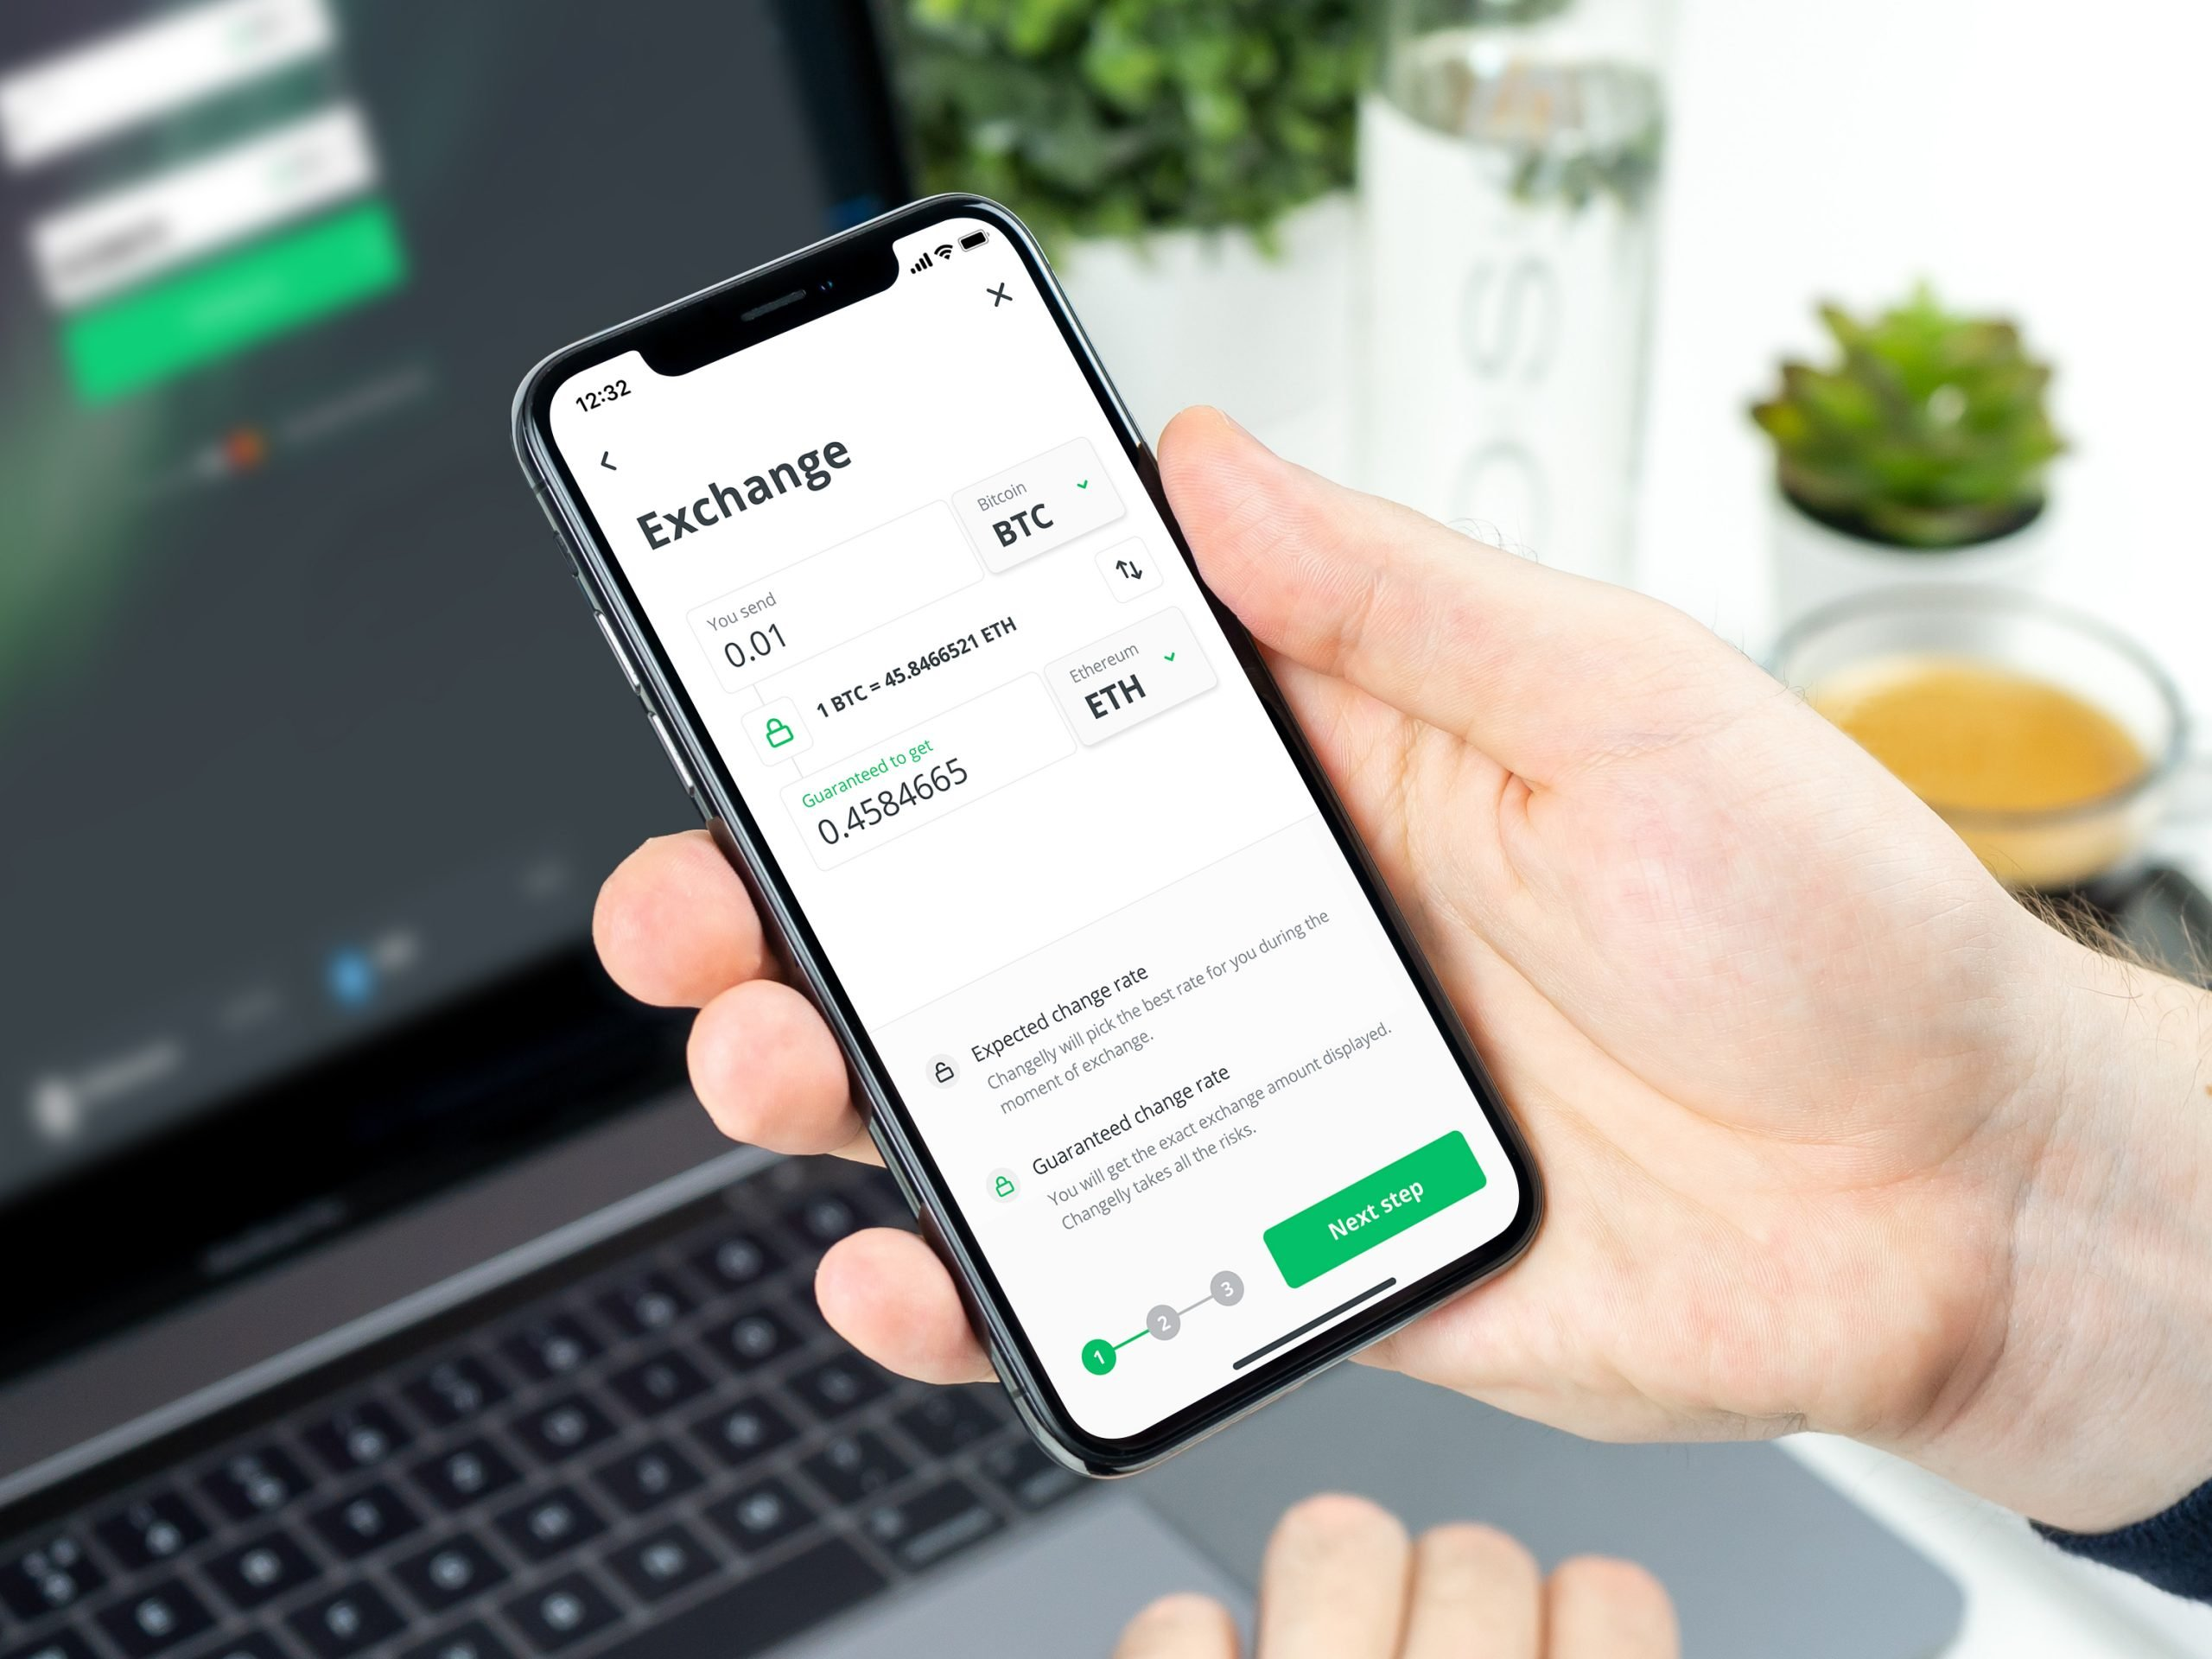 Changelly App On iPhone X